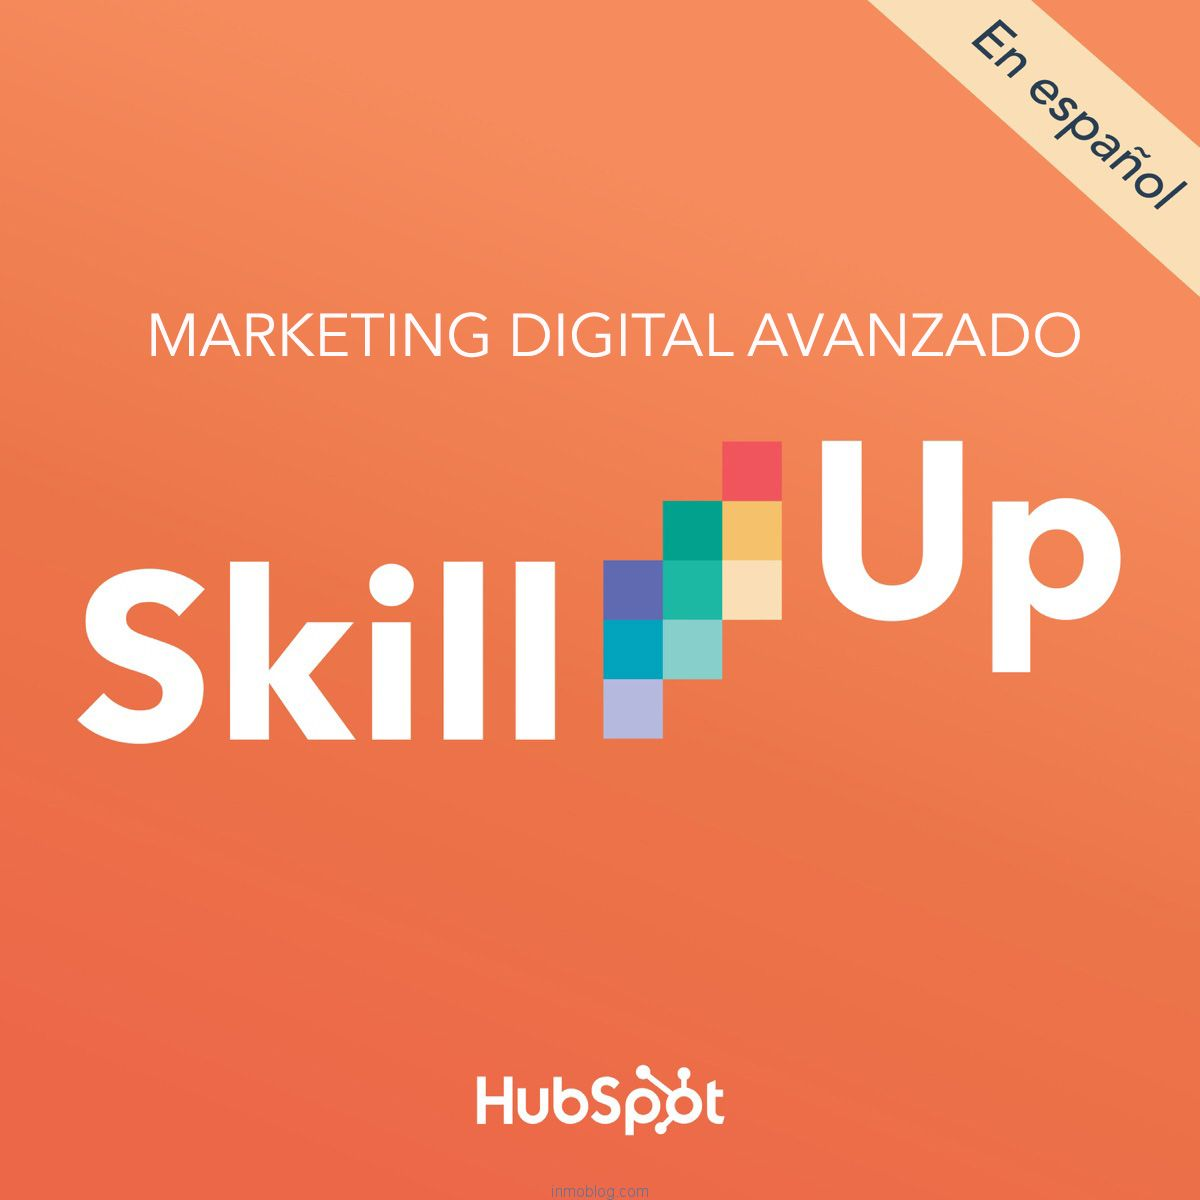 skill up podacast hubspot español marketing digital